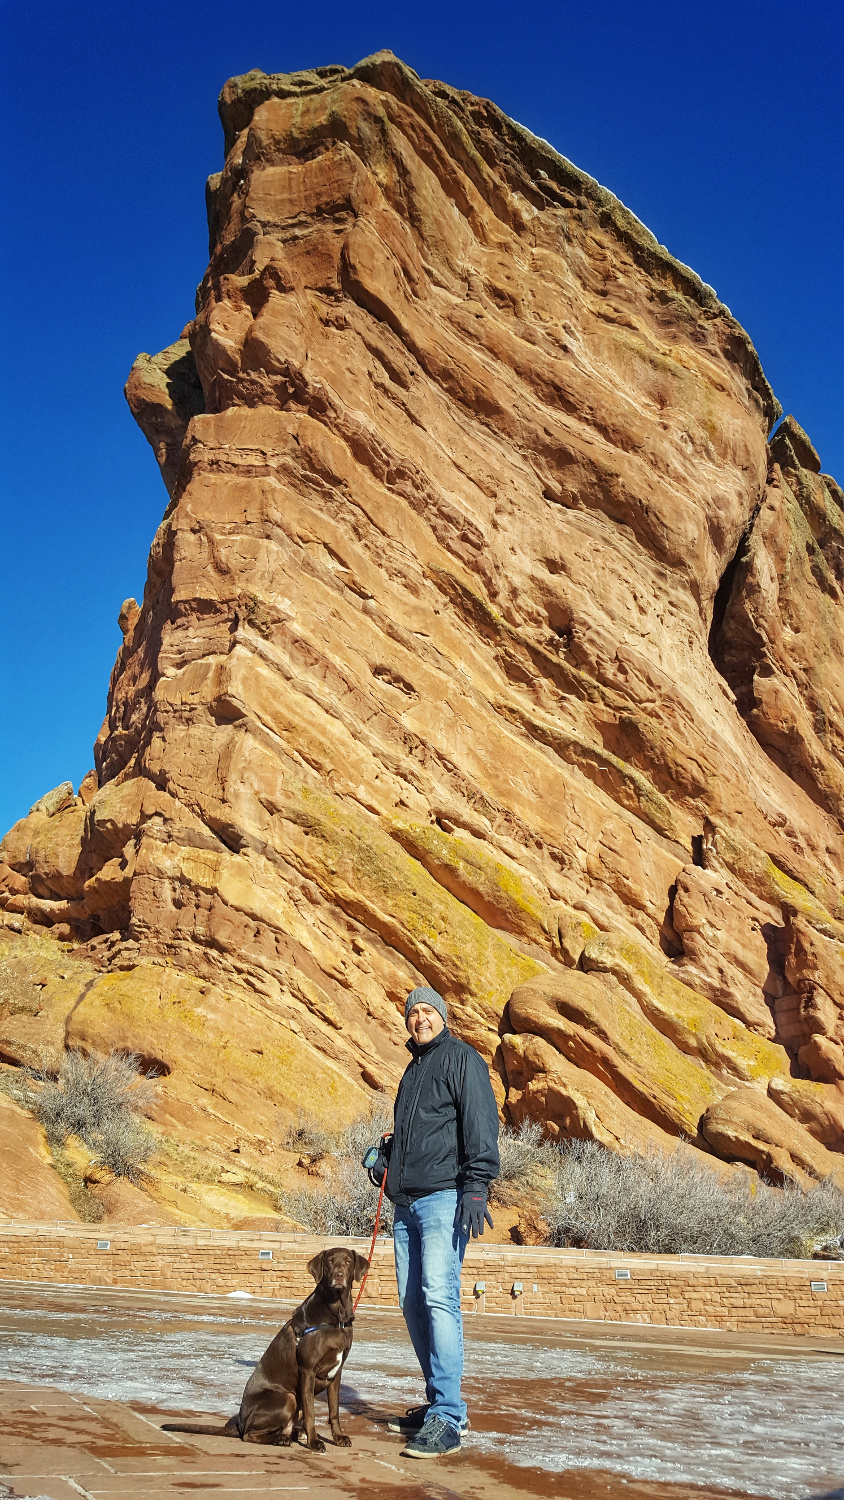 One of the Huge Rocks at Red Rocks